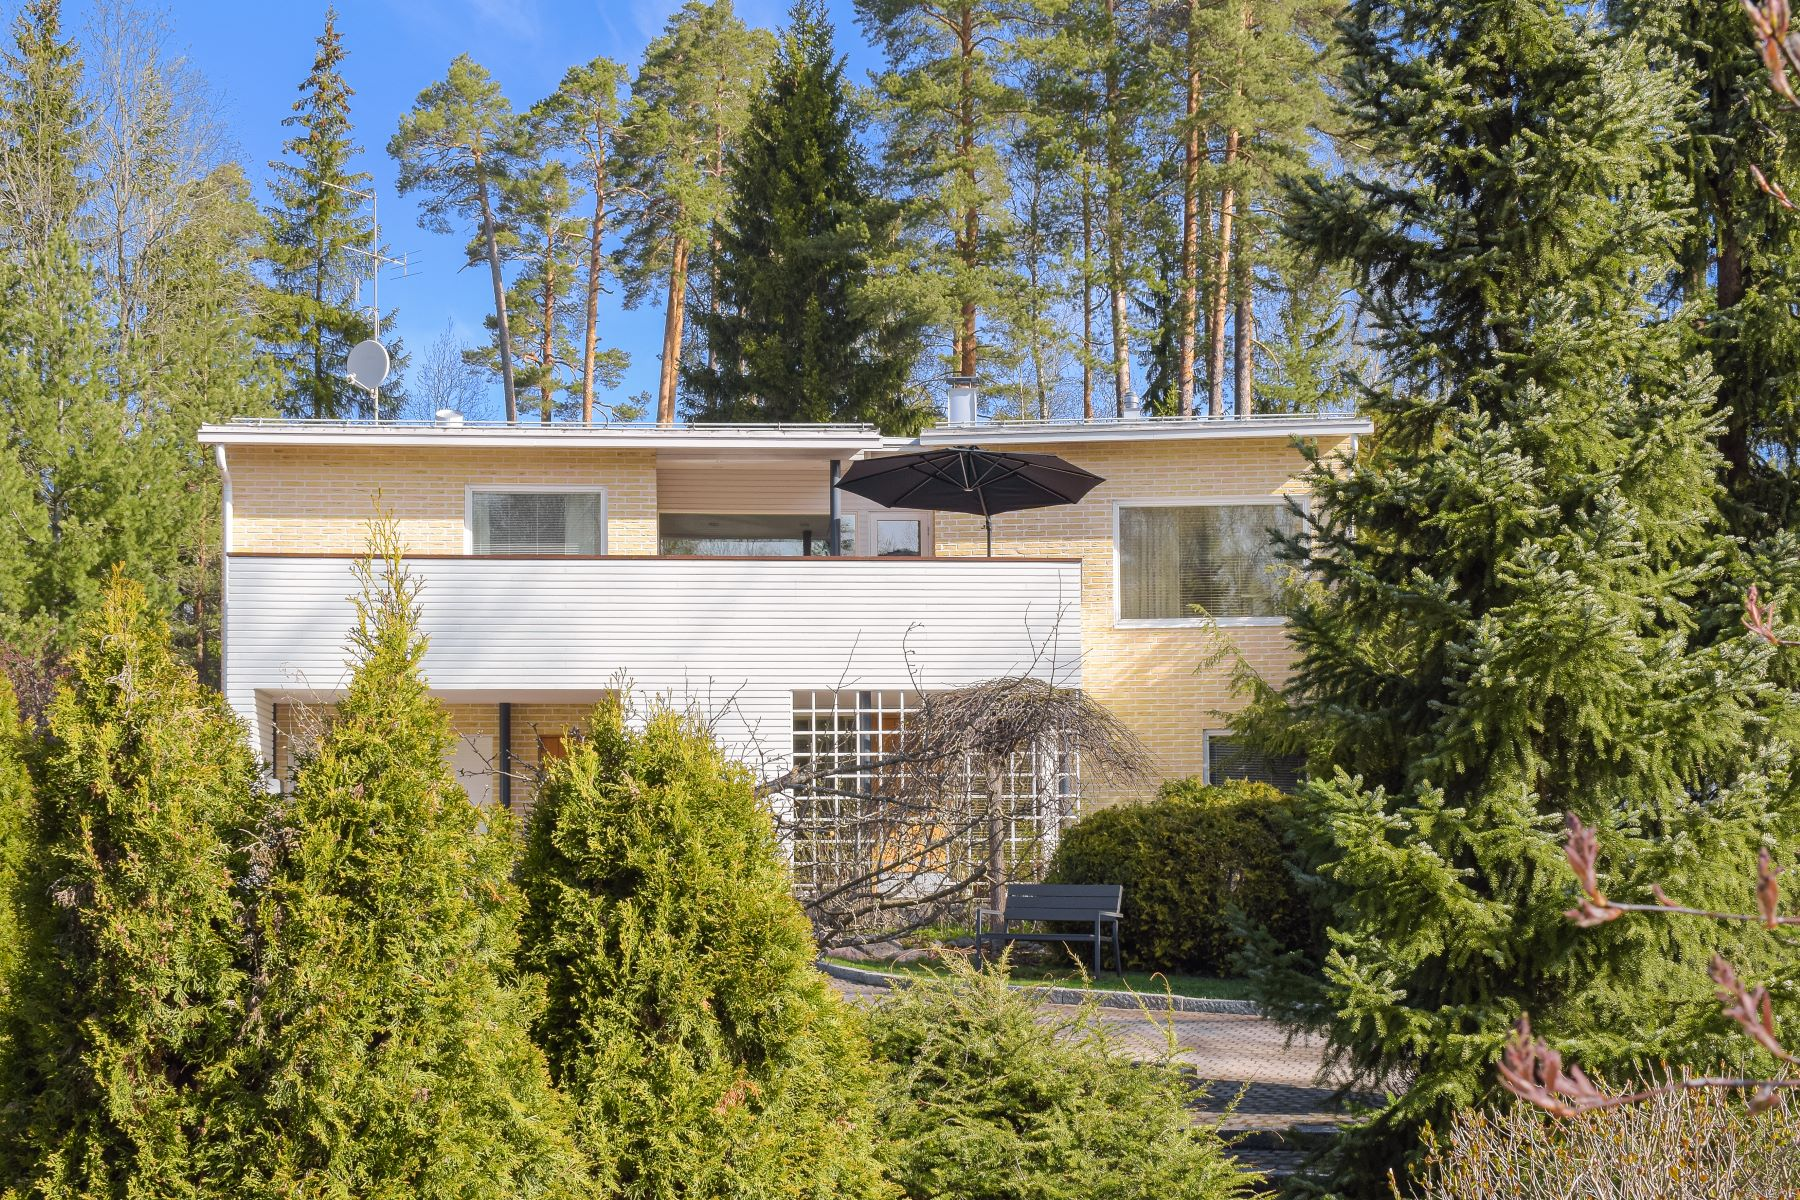 Single Family Homes for Sale at Kavallintie 32 Other Uusimaa, Uusimaa 02700 Finland